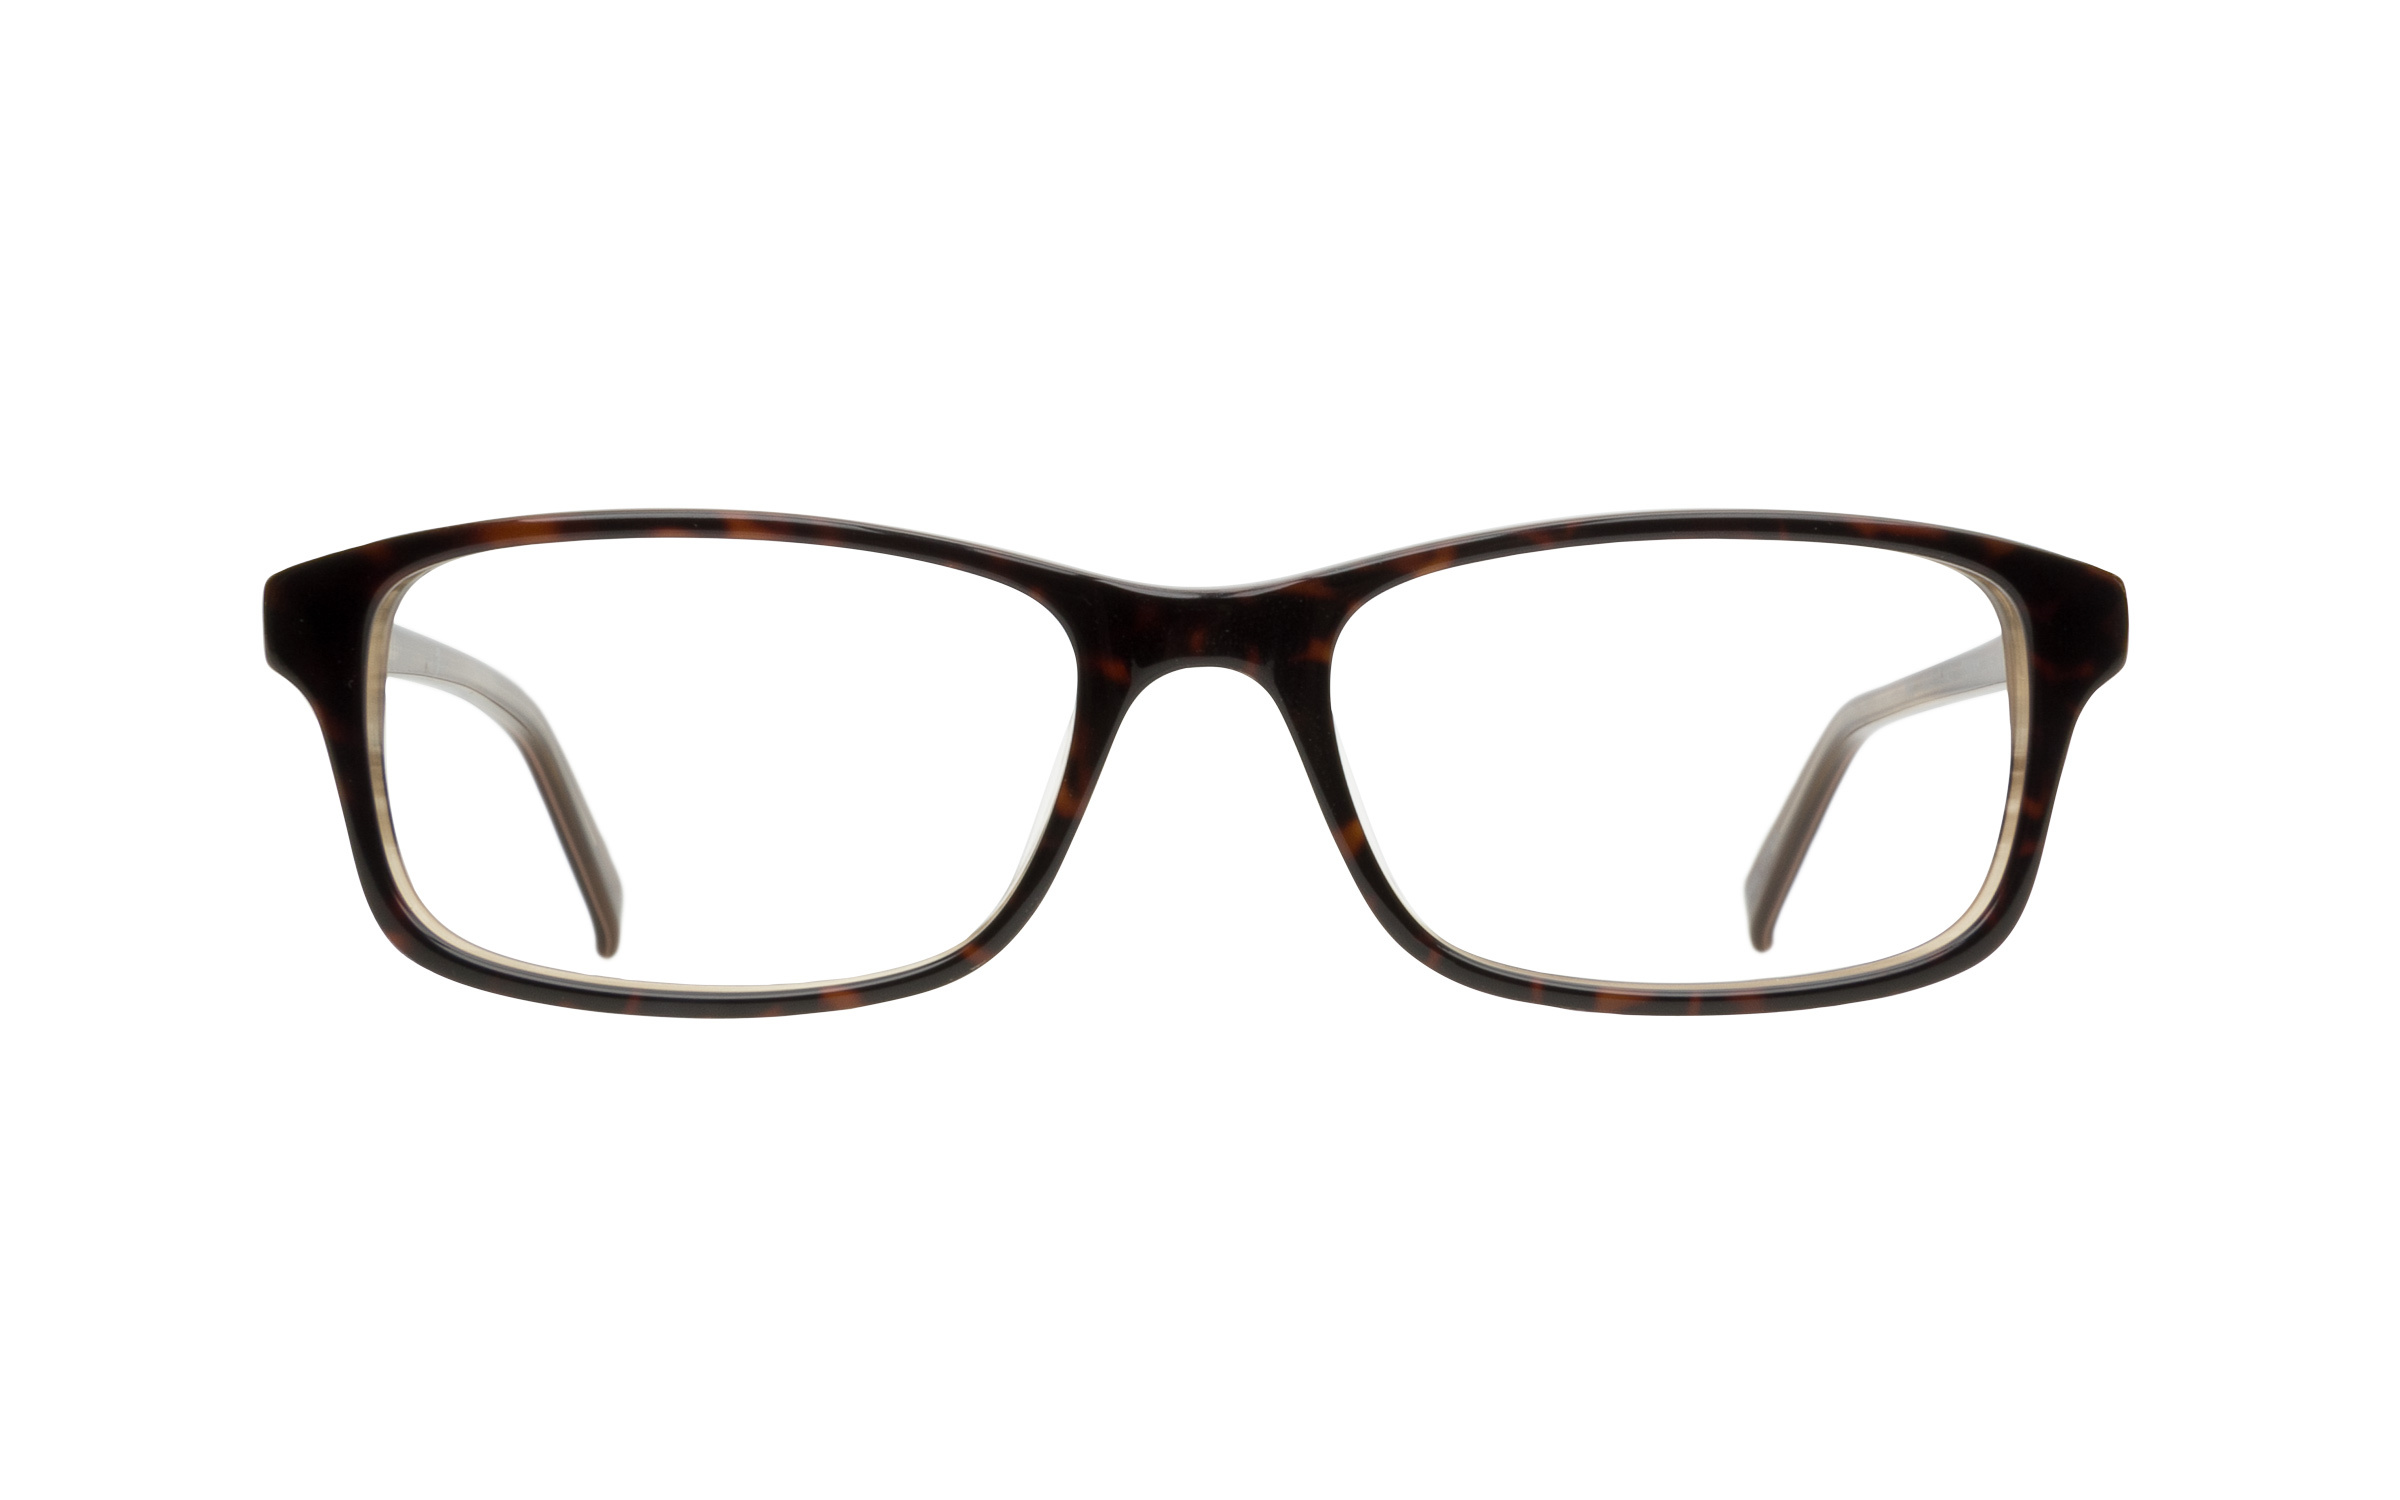 7 for All Mankind Glasses Rectangular Tortoise Acetate Online Clearly